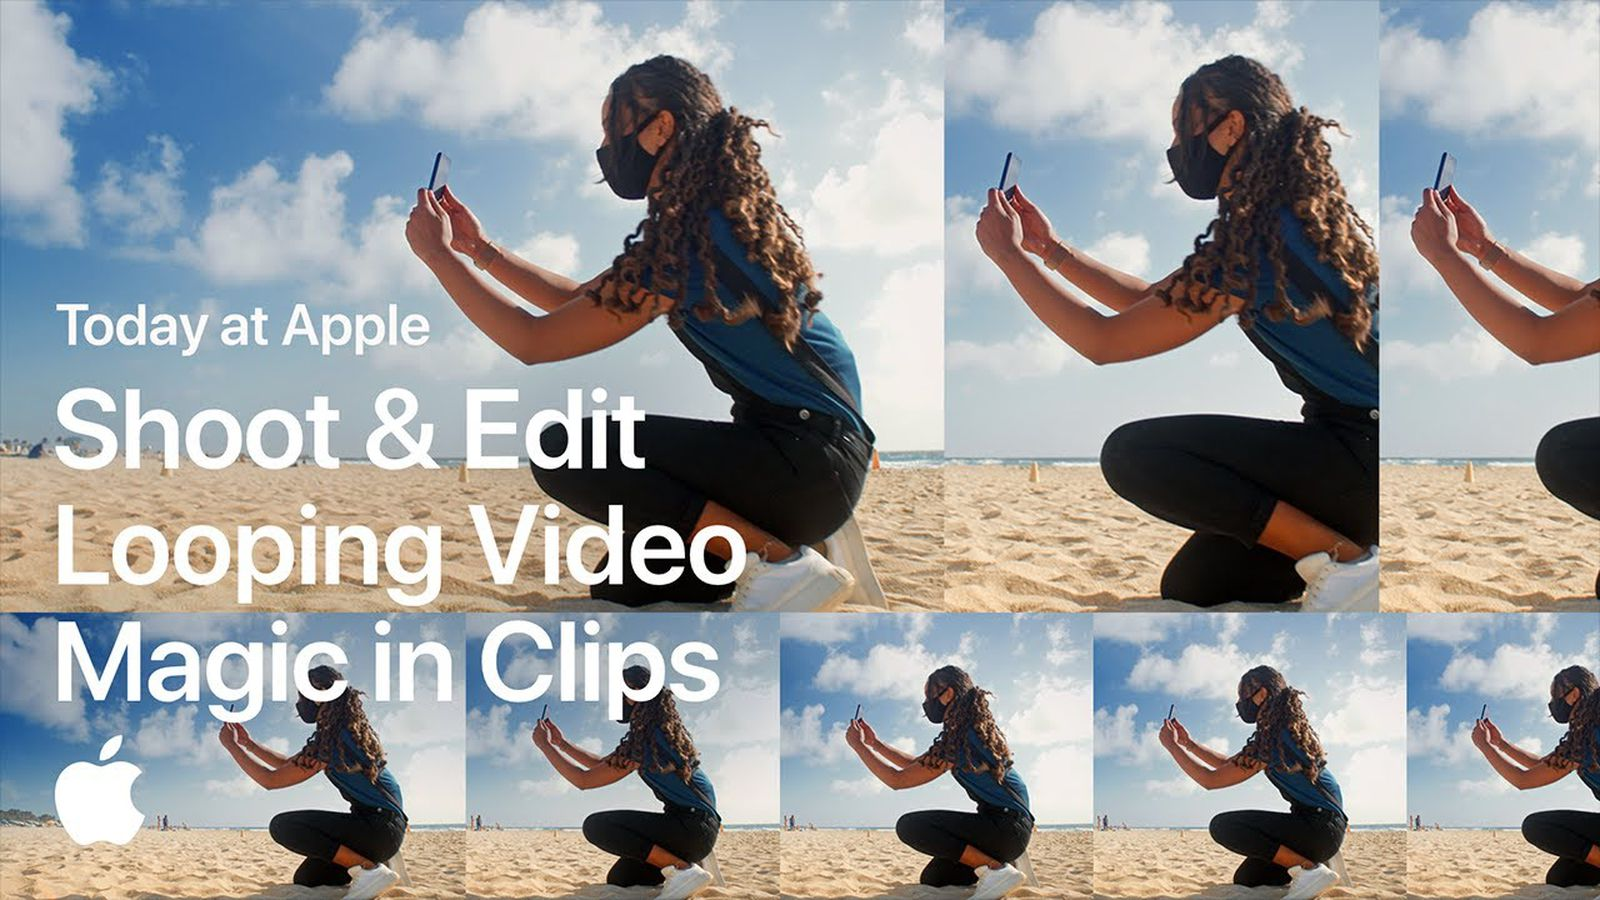 """Terceira sessão do """"Today at Apple"""" no YouTube: Shoot & Edit Looping Video Magic in Clips"""